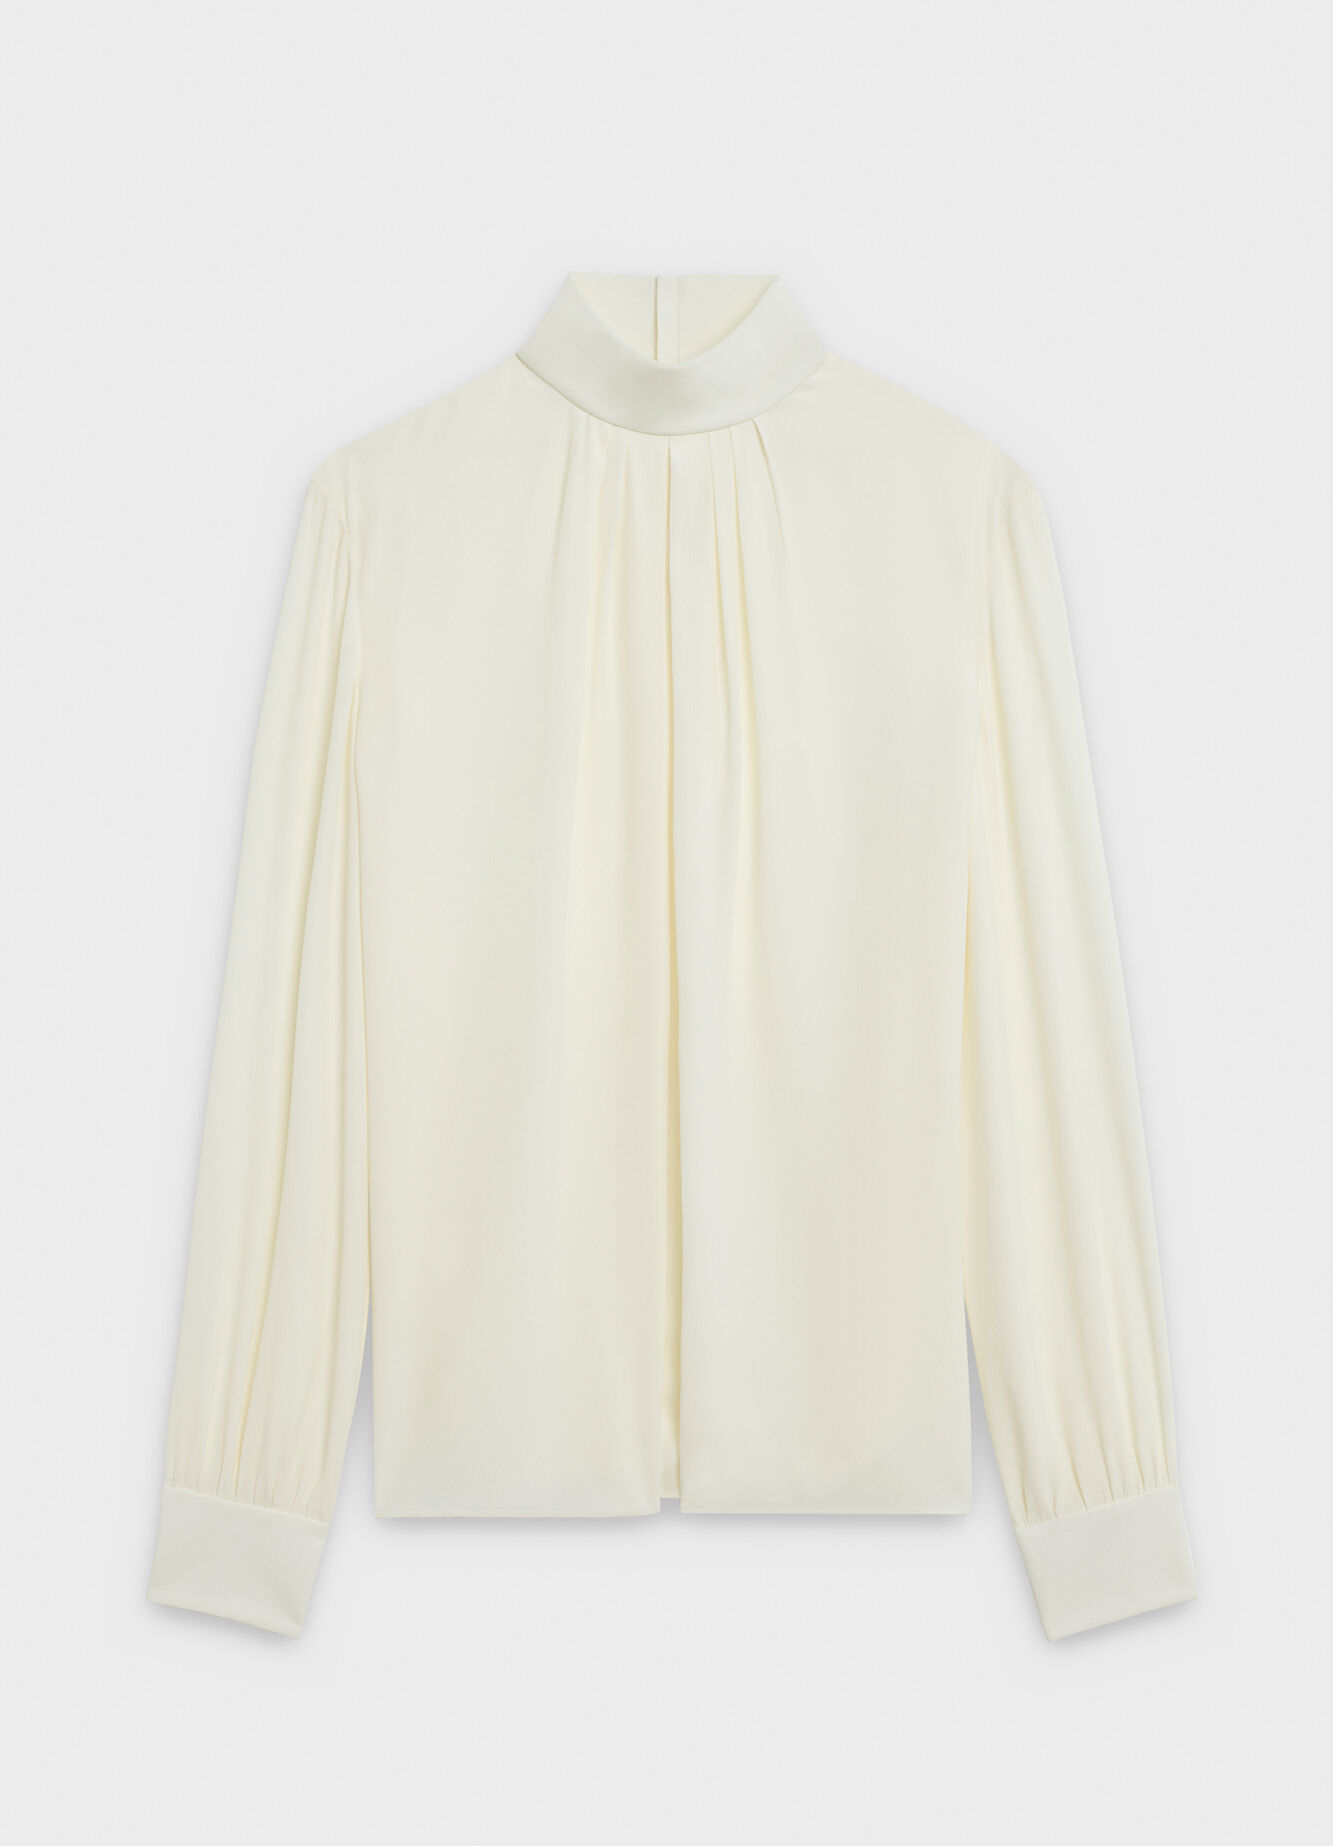 CELINE HIGH-COLLAR GATHERED BLOUSE IN SILK CREPE AND ACETATE